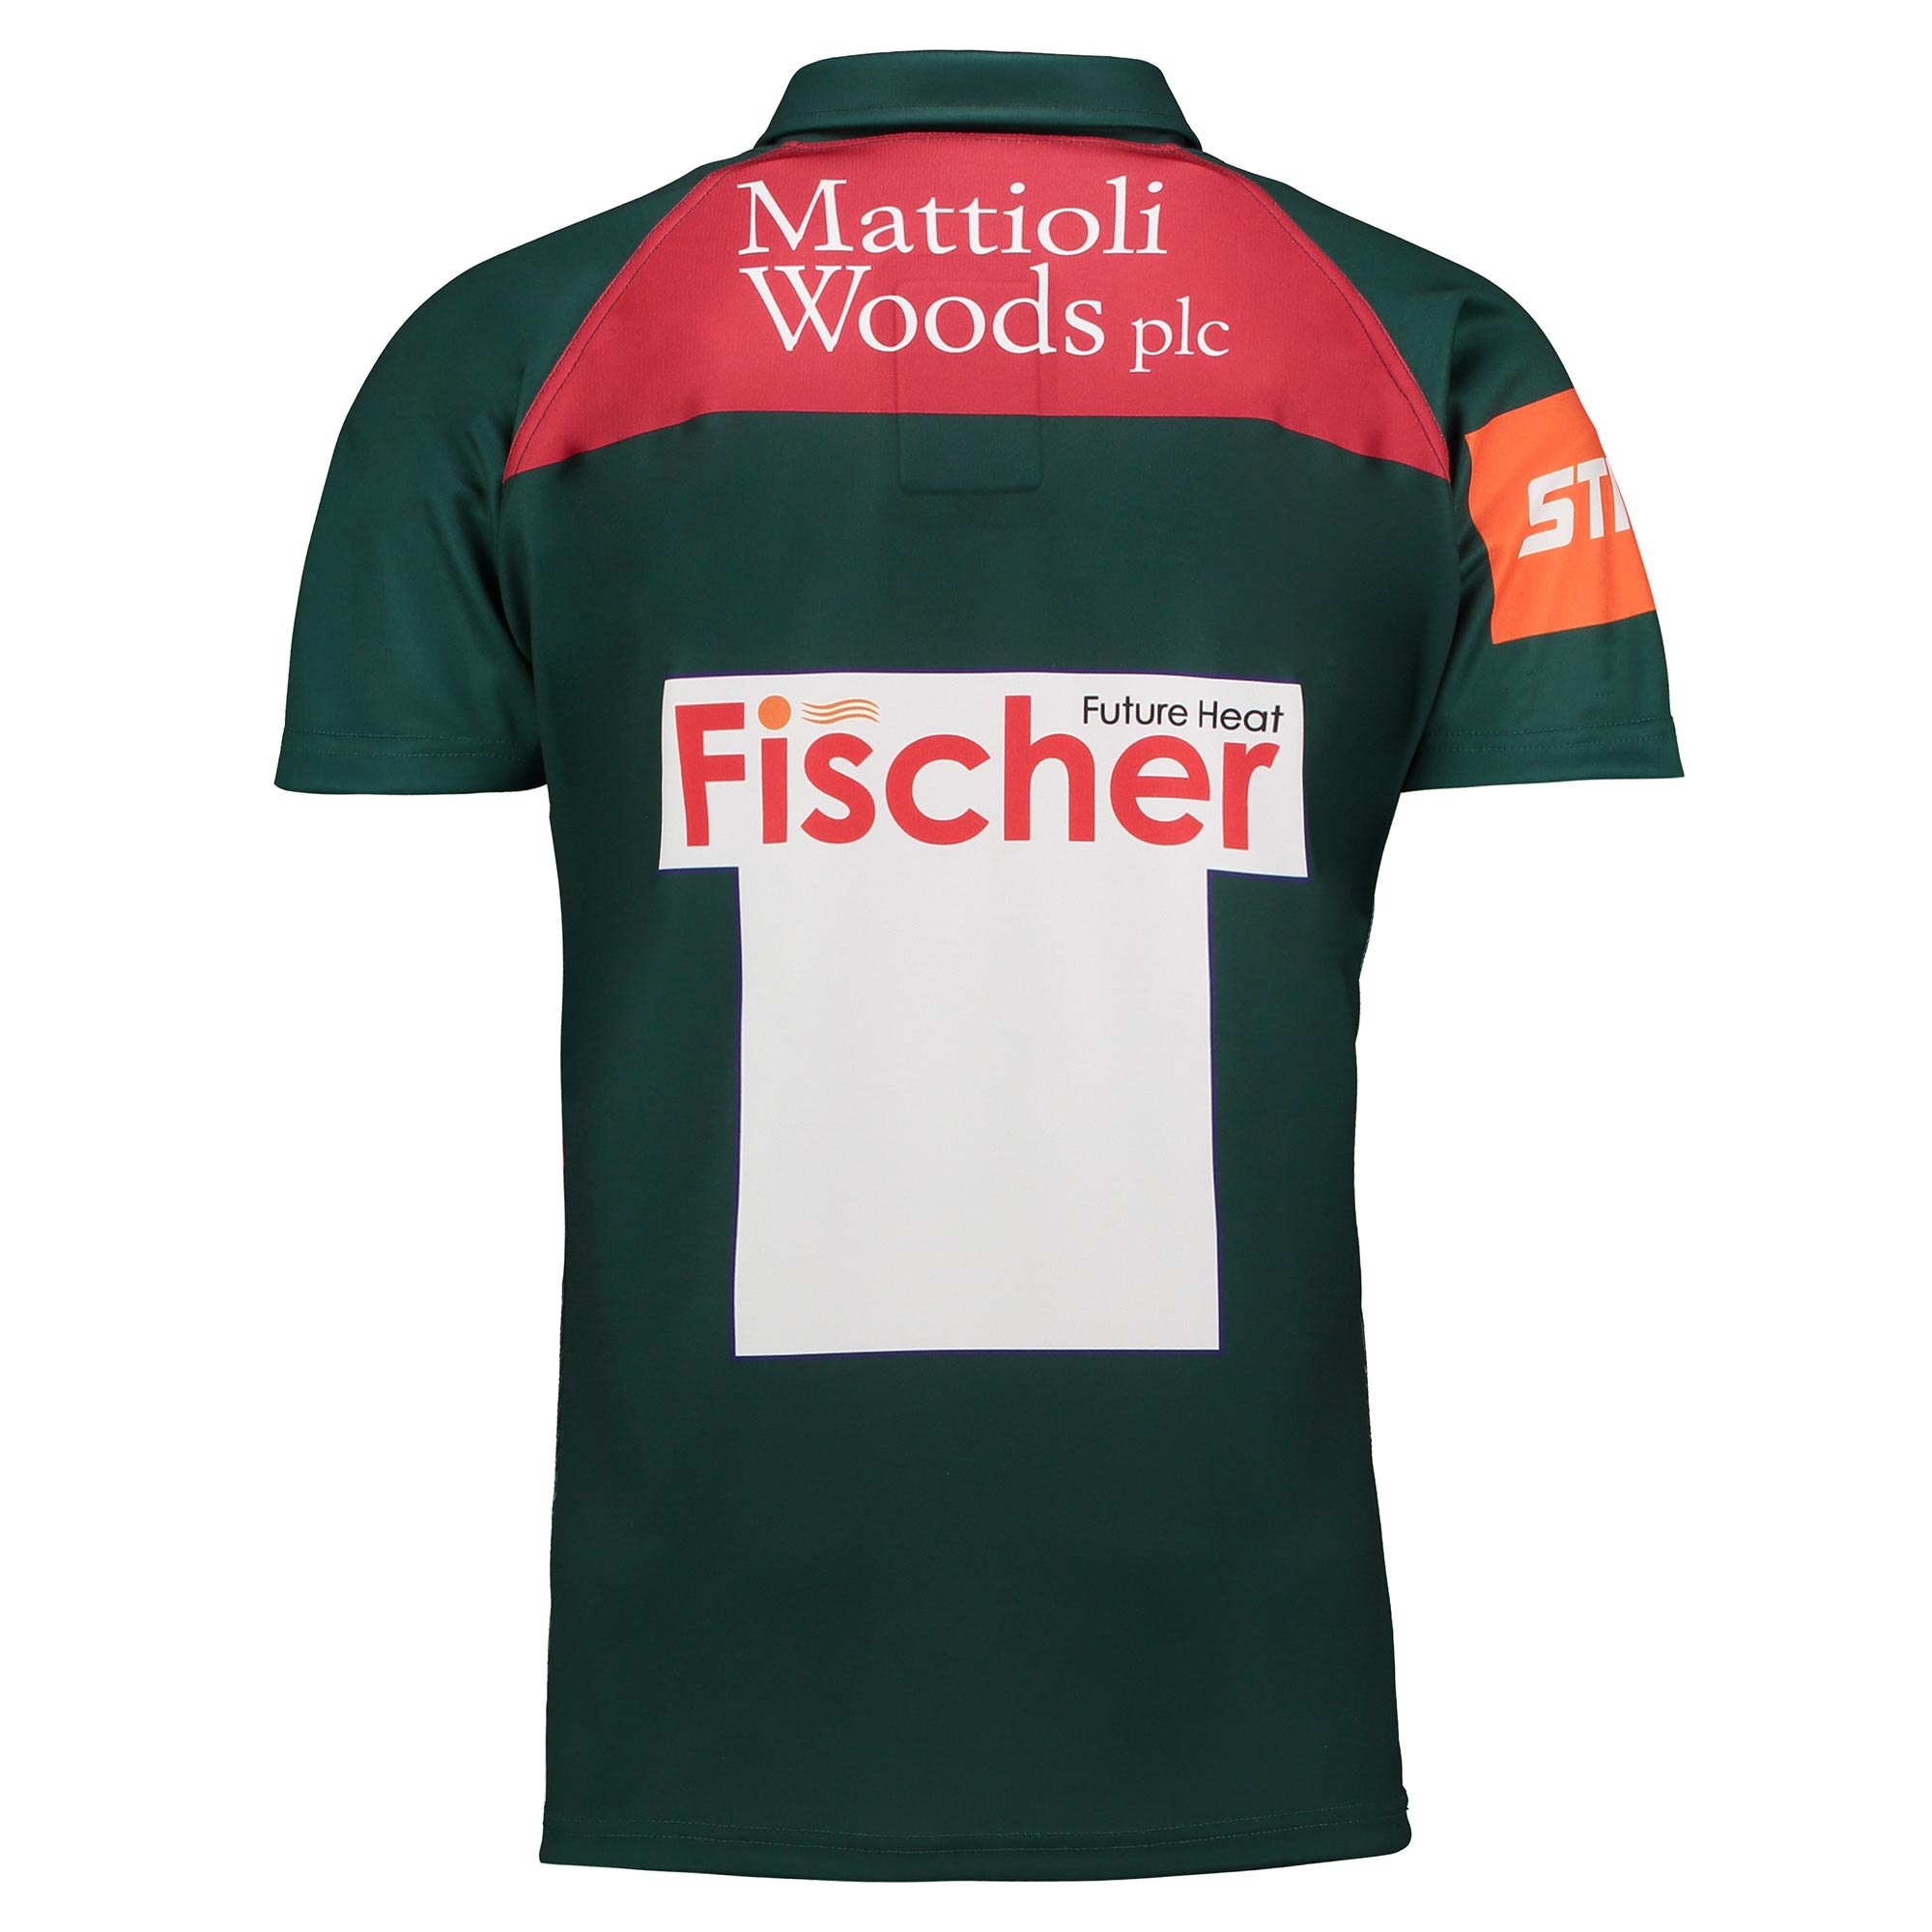 New Kits for 17/18 Tigers-206320a